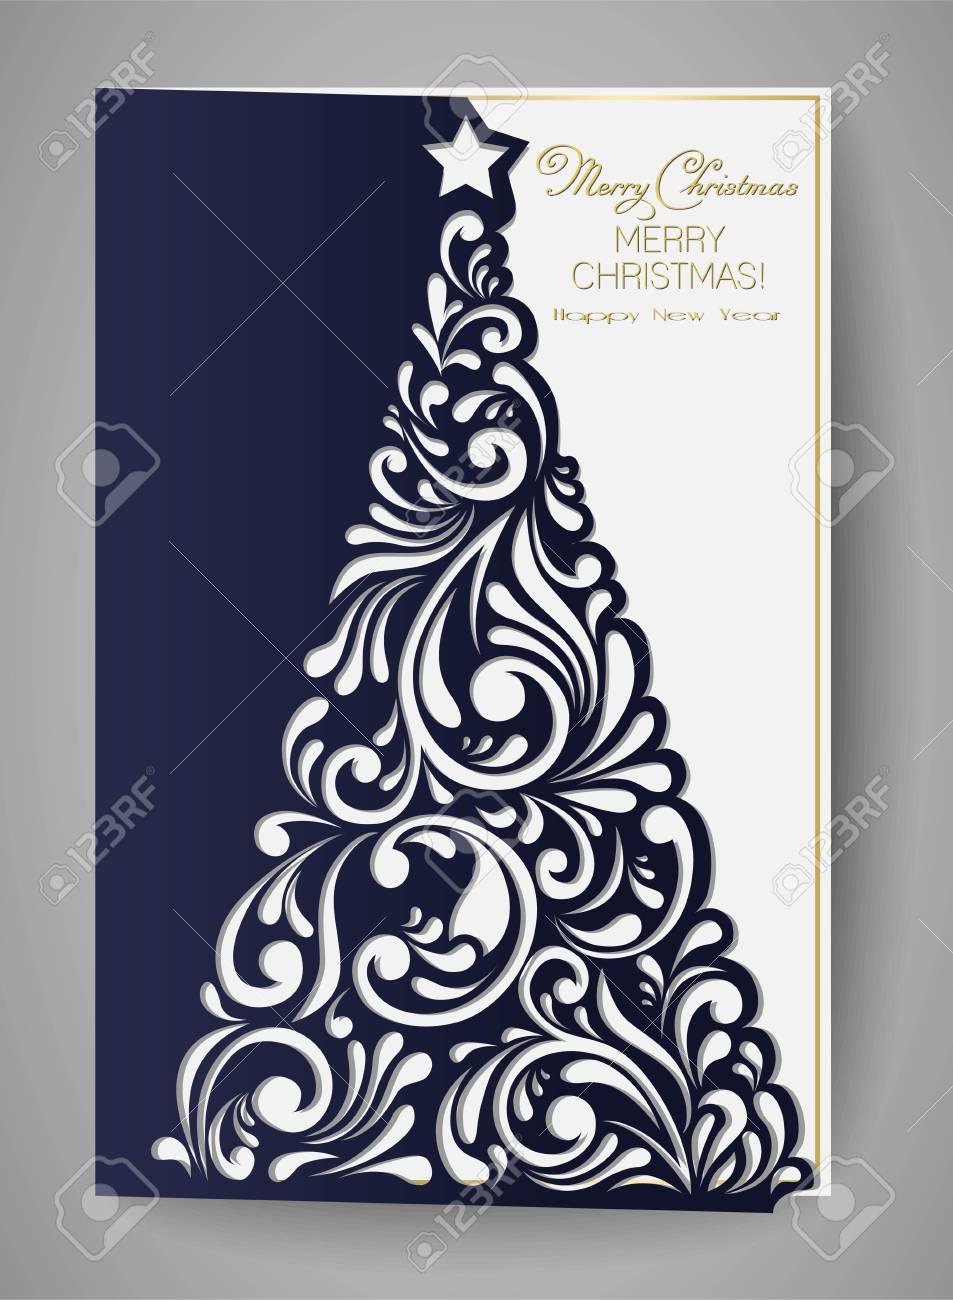 Christmas Tree Cut Out.Laser Cut Template For Christmas Cards Square Invitation For